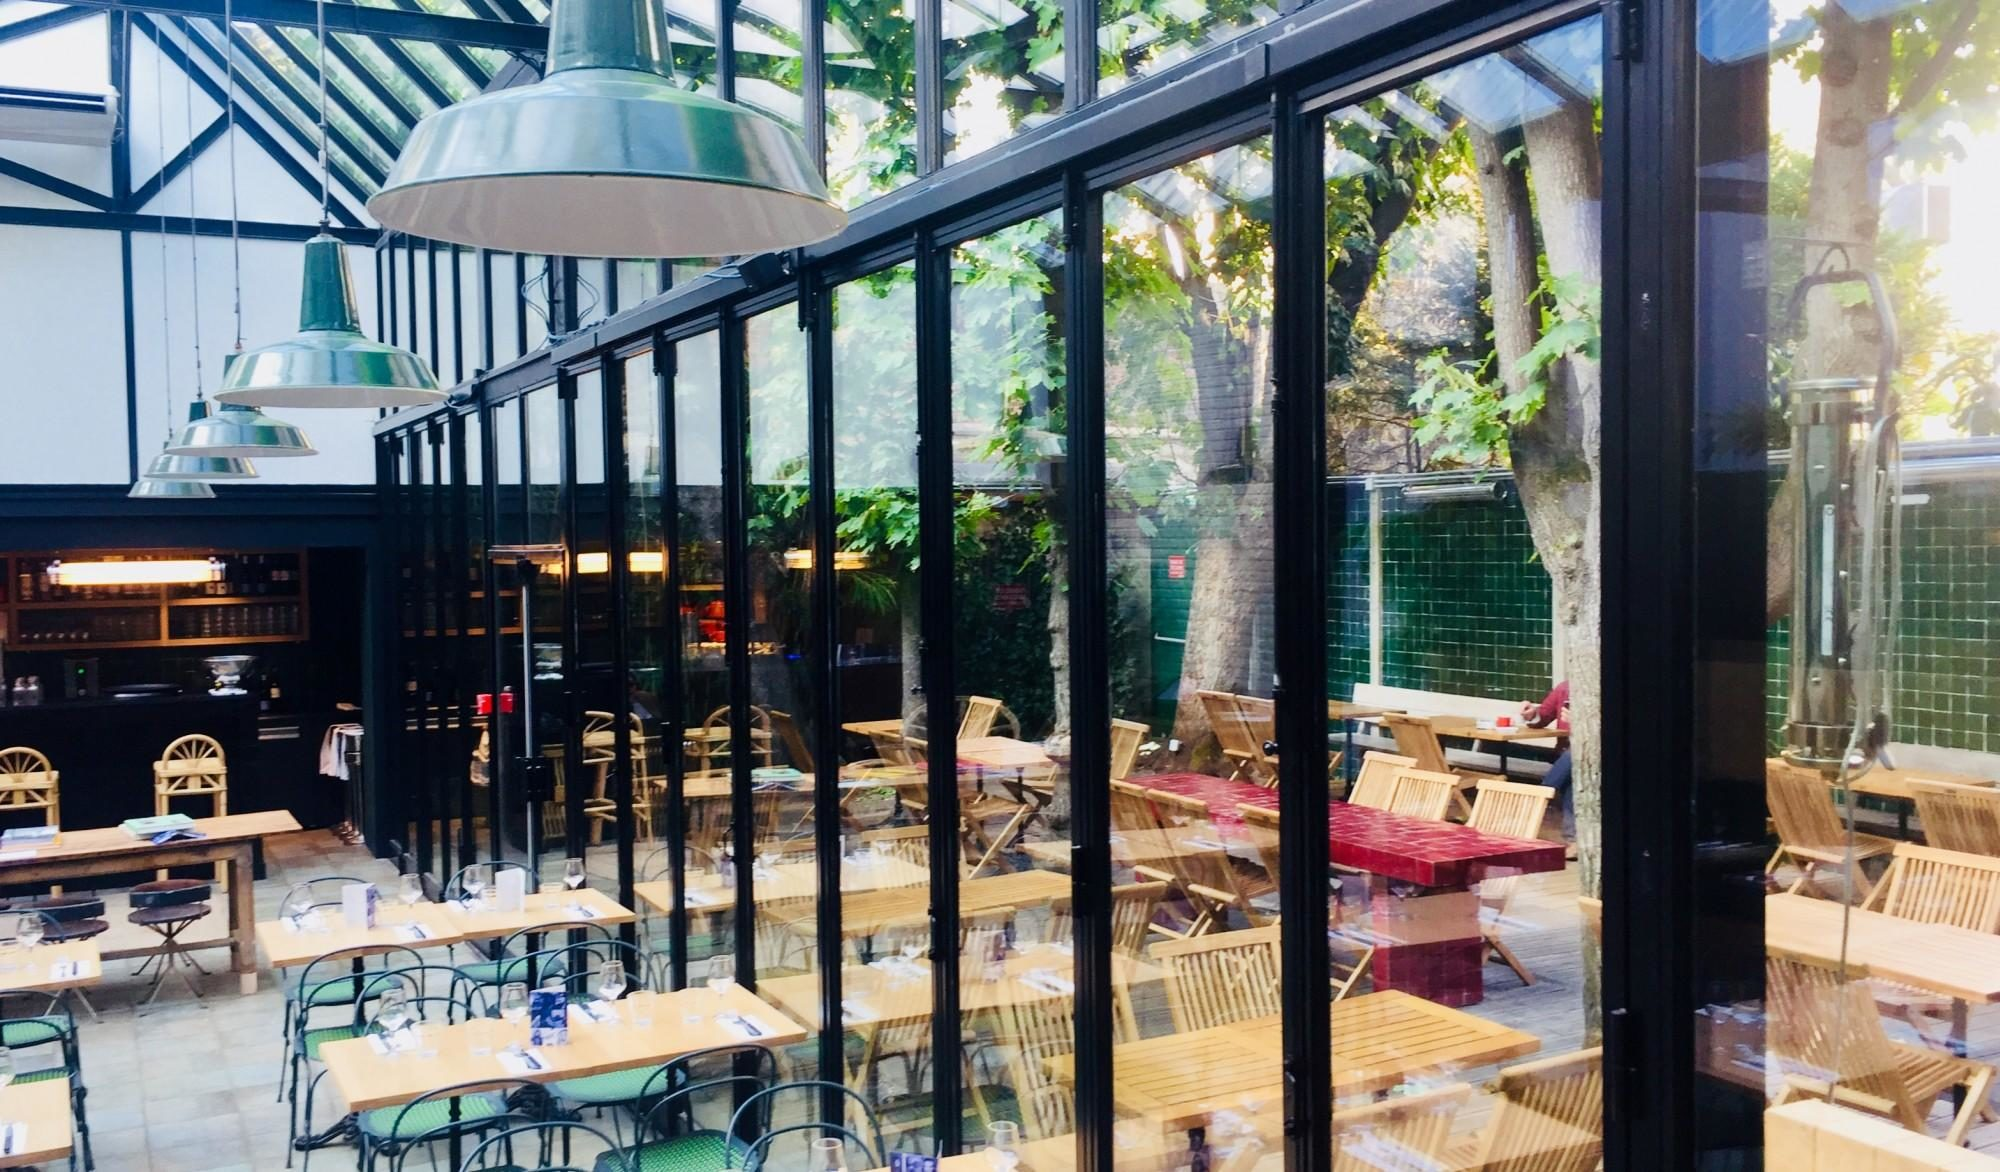 Le Lieu Secret bar in Paris comes with a pretty outdoor terrace with a conservatory for colder days.